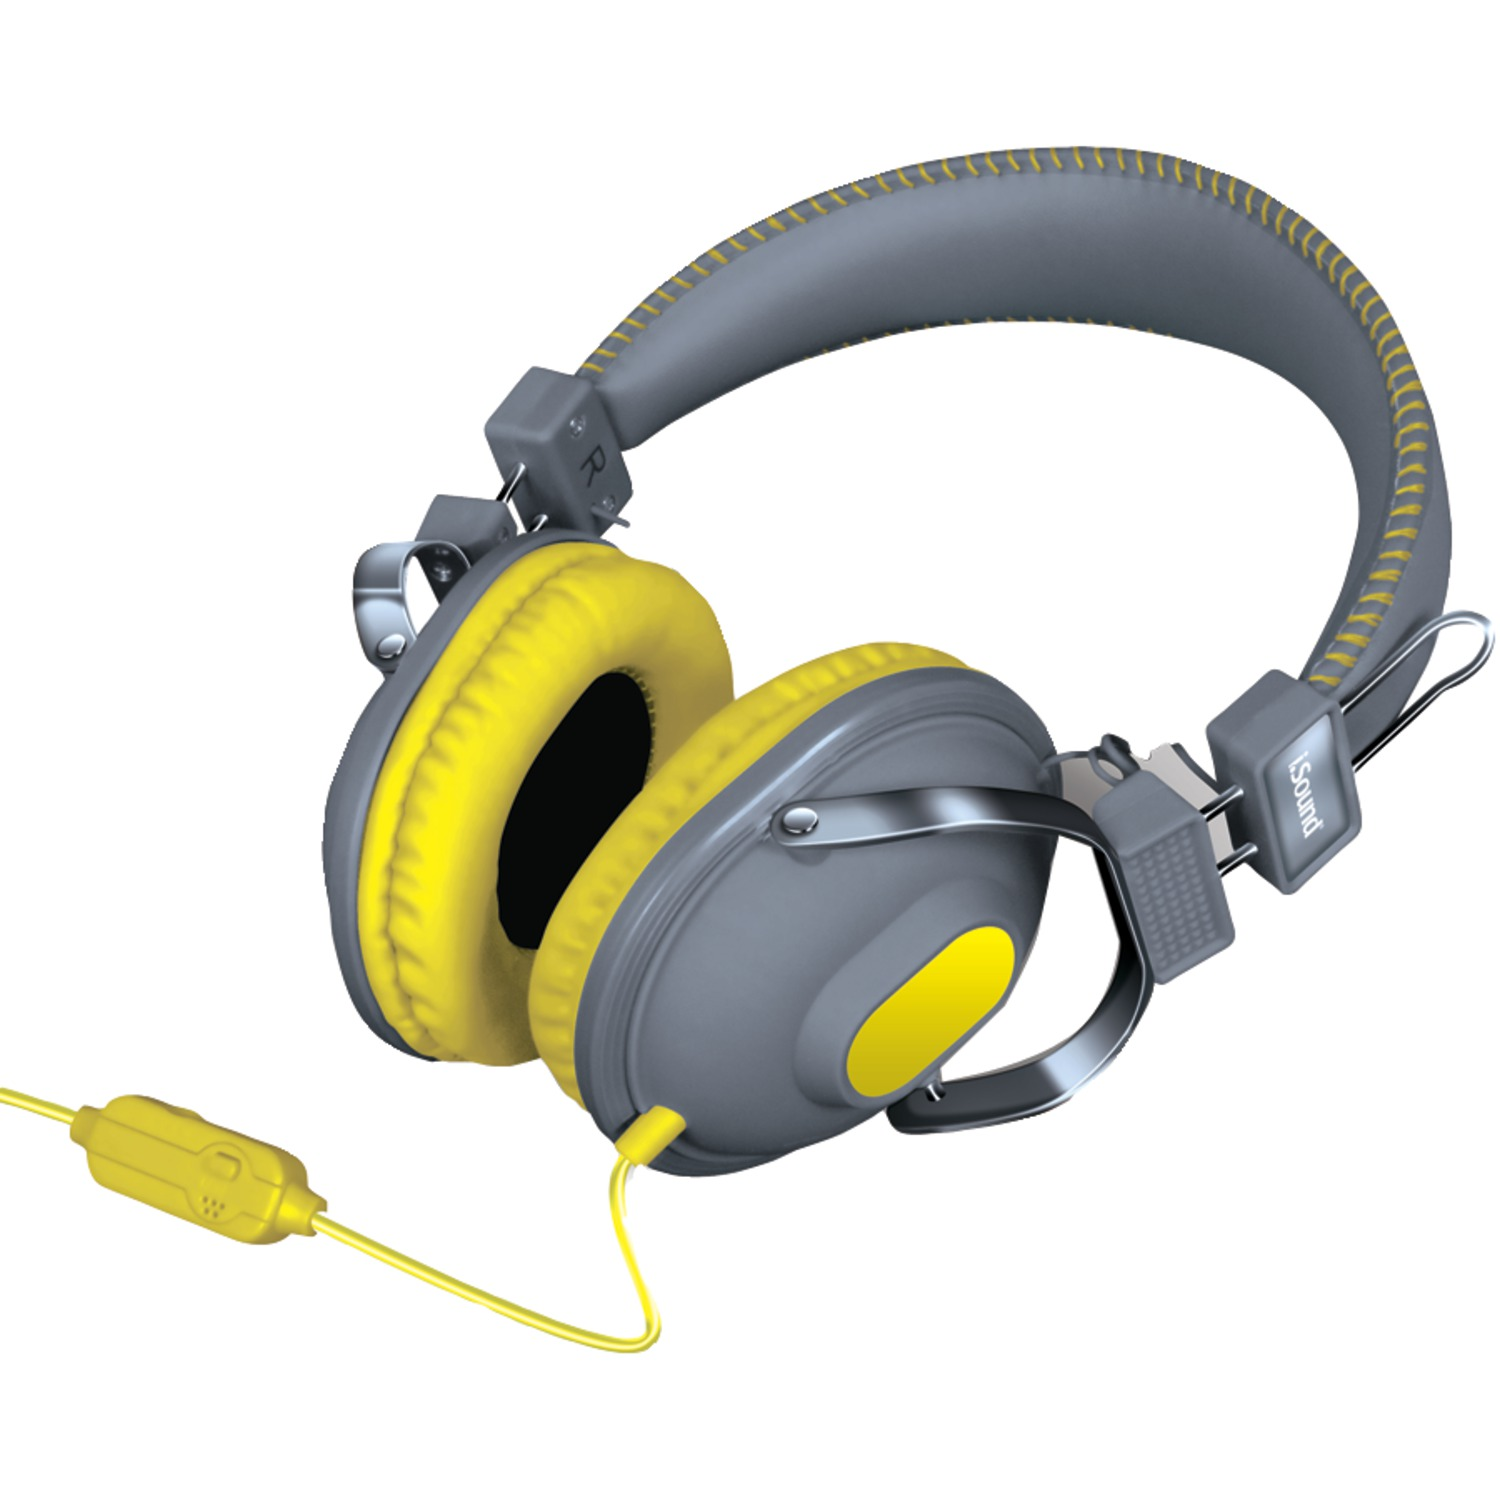 dreamGEAR DGHM-5523 HM-260 Headphones with Microphone (Yellow)